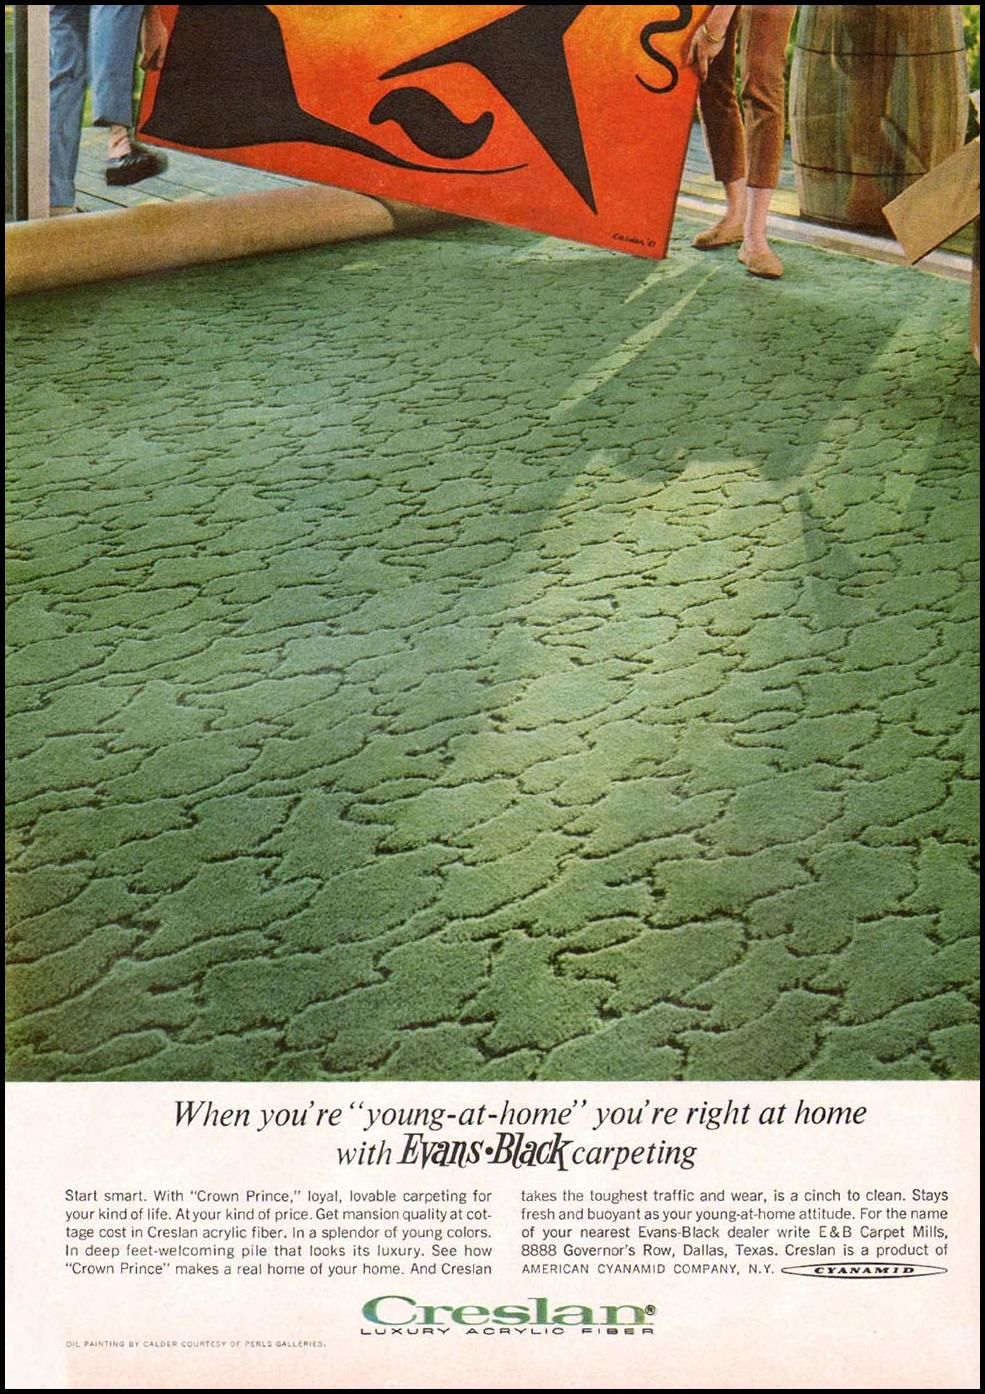 EVANS-BLACK CRESLAN HOME CARPET GOOD HOUSEKEEPING 10/01/1965 p. 242